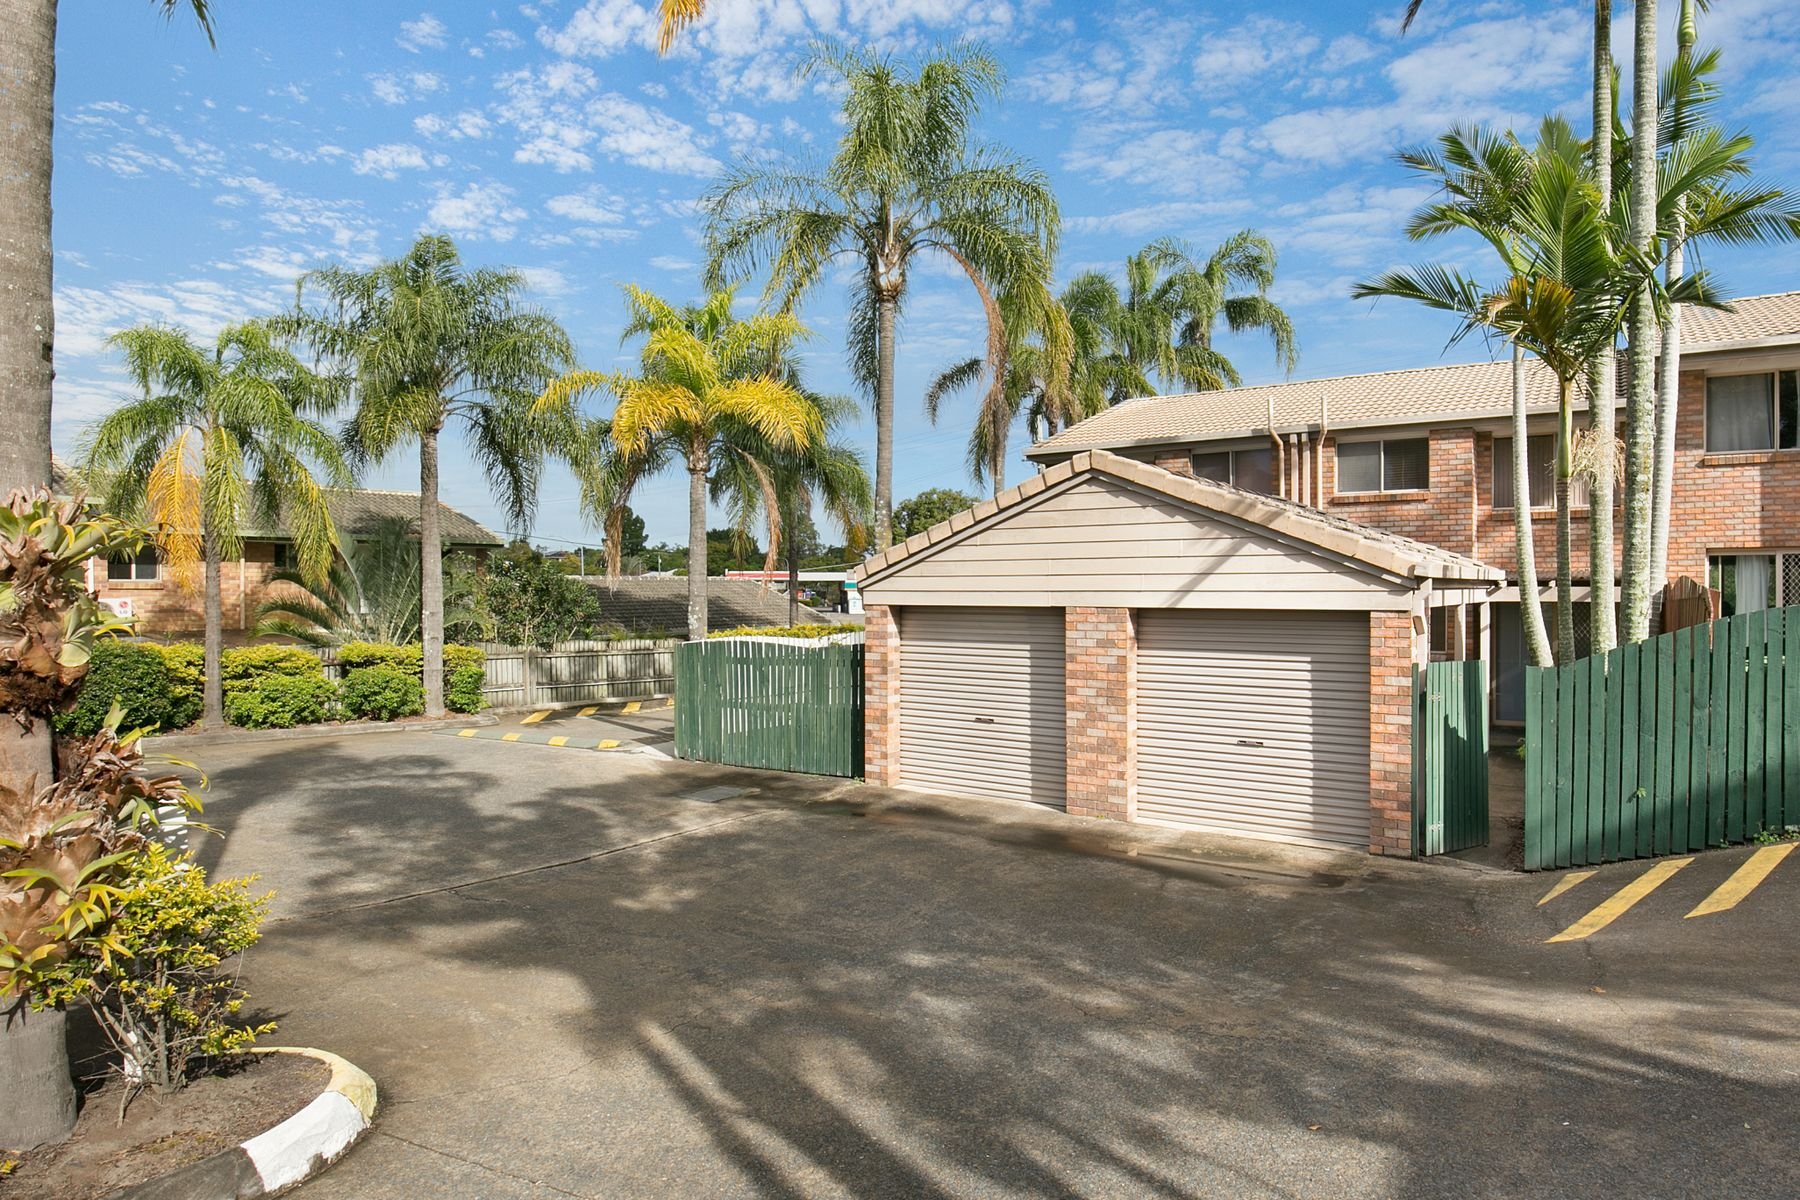 2/880 Rochedale Road, Rochedale South, QLD 4123